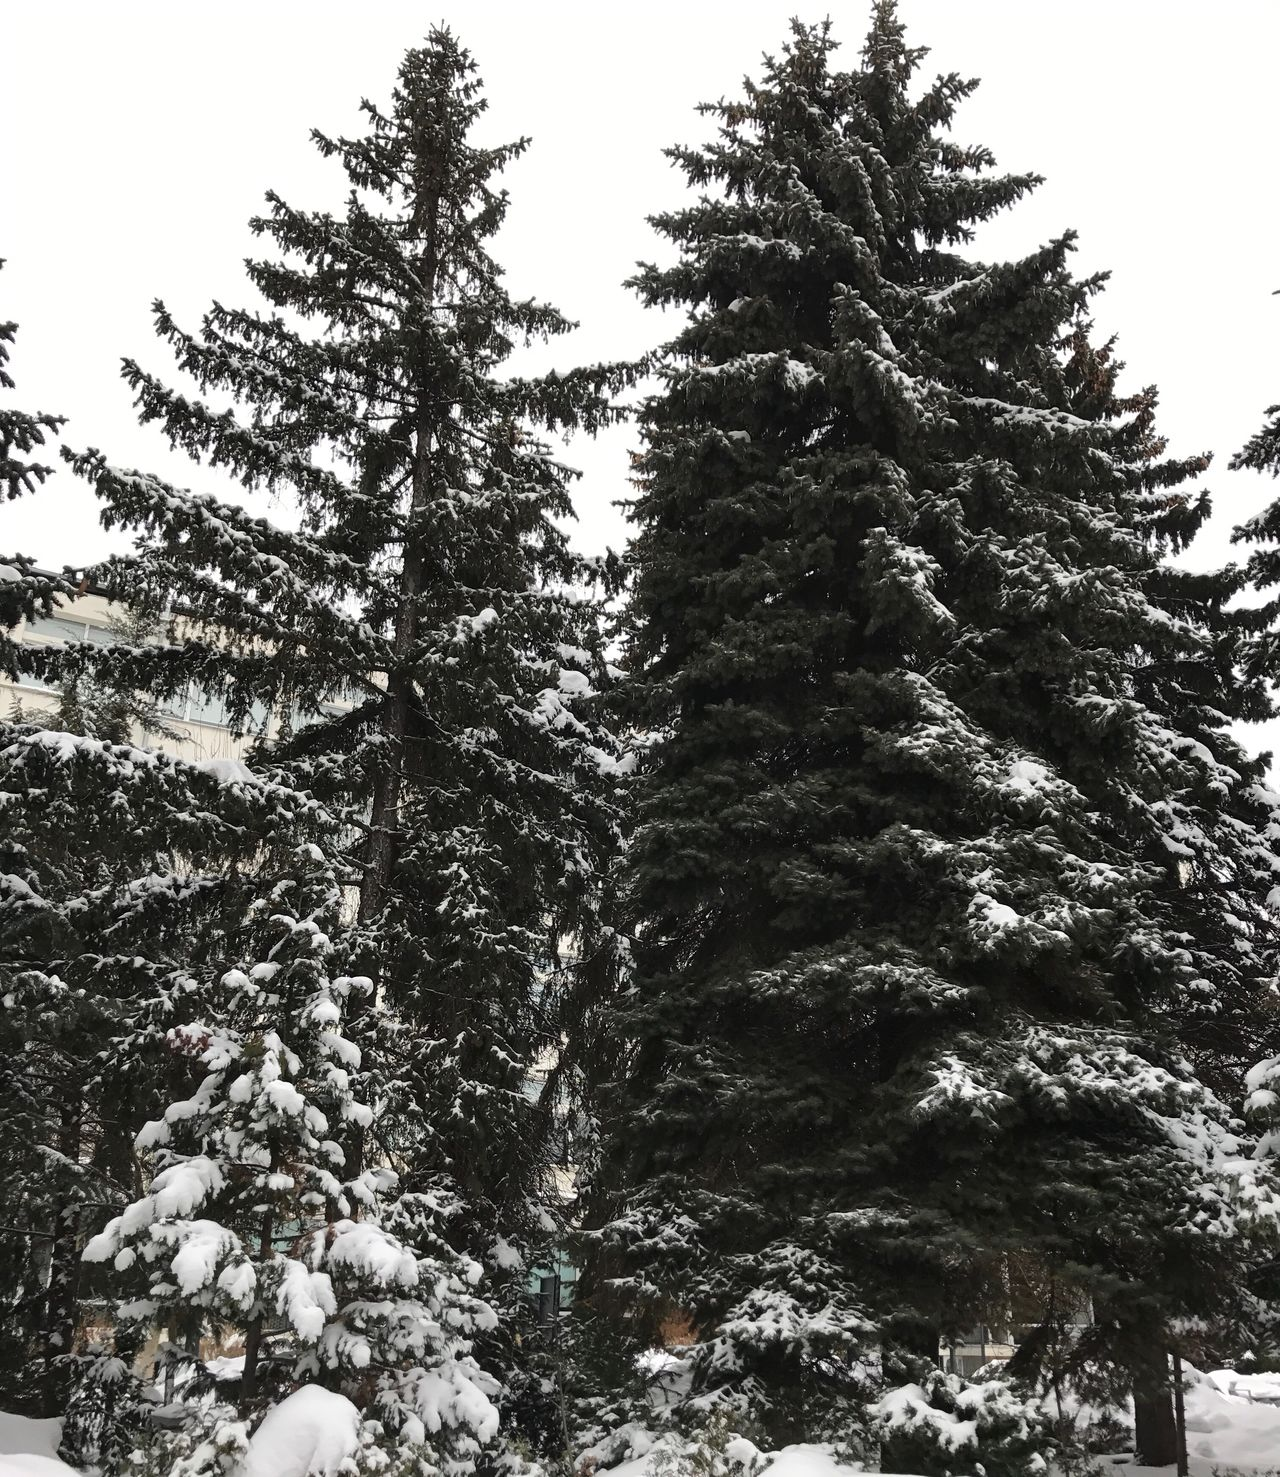 Snow Trees Snow Trees Tree Winter Nature Pine Tree Cold Temperature Growth Beauty In Nature No People Low Angle View Coniferous Tree Outdoors Scenics Branch Day Christmas Tree Sofia, Bulgaria